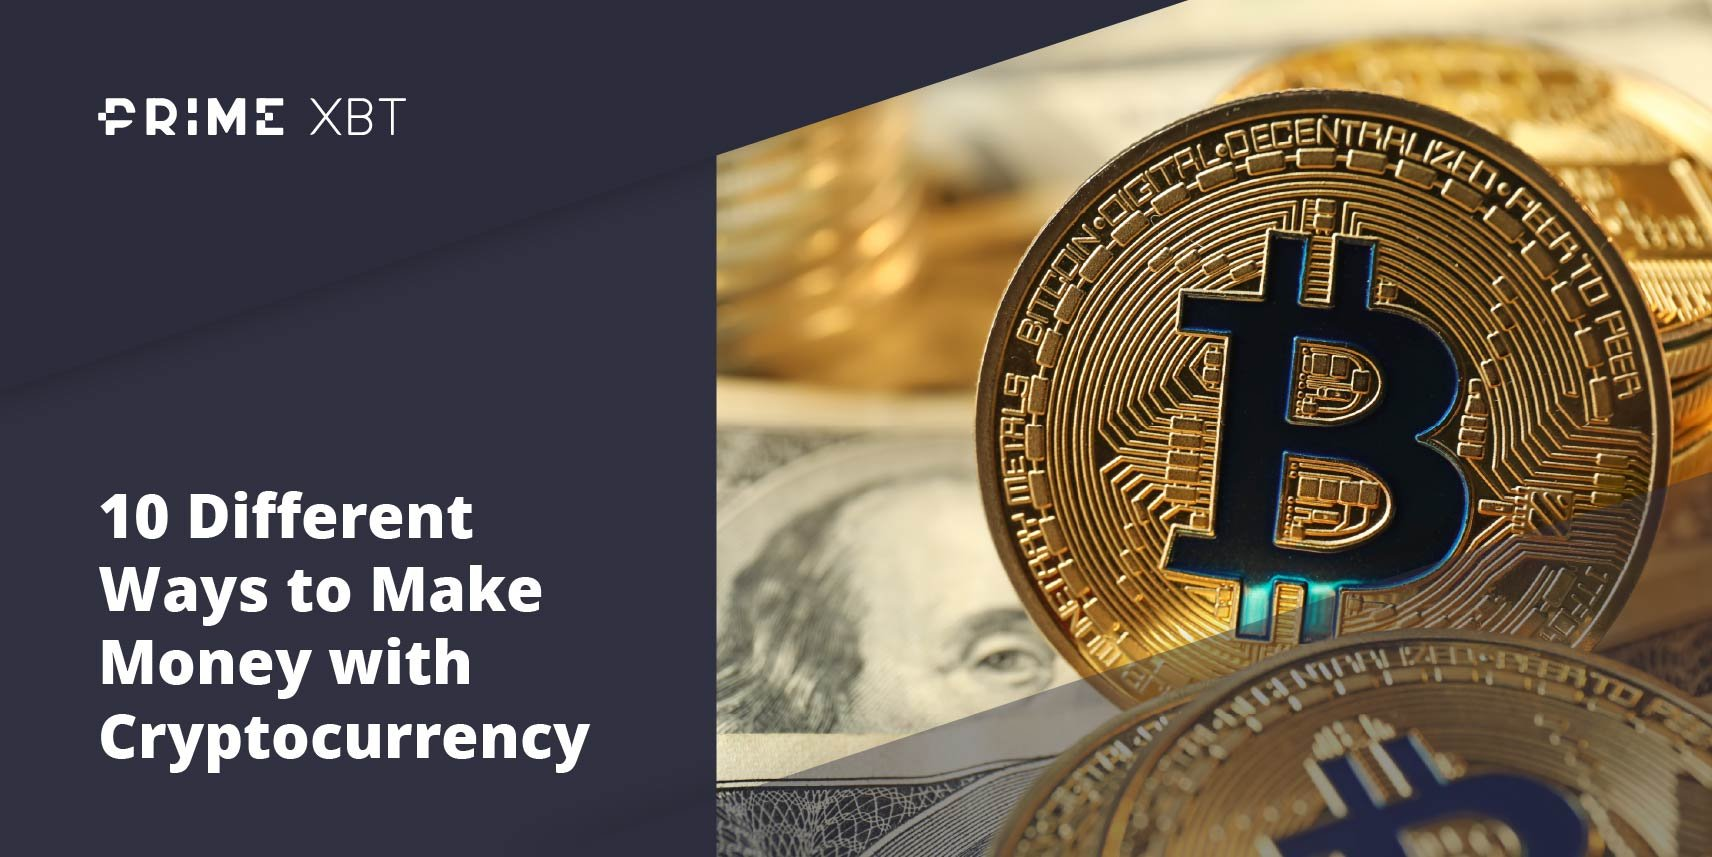 10 Different Ways to Make Money with Cryptocurrency